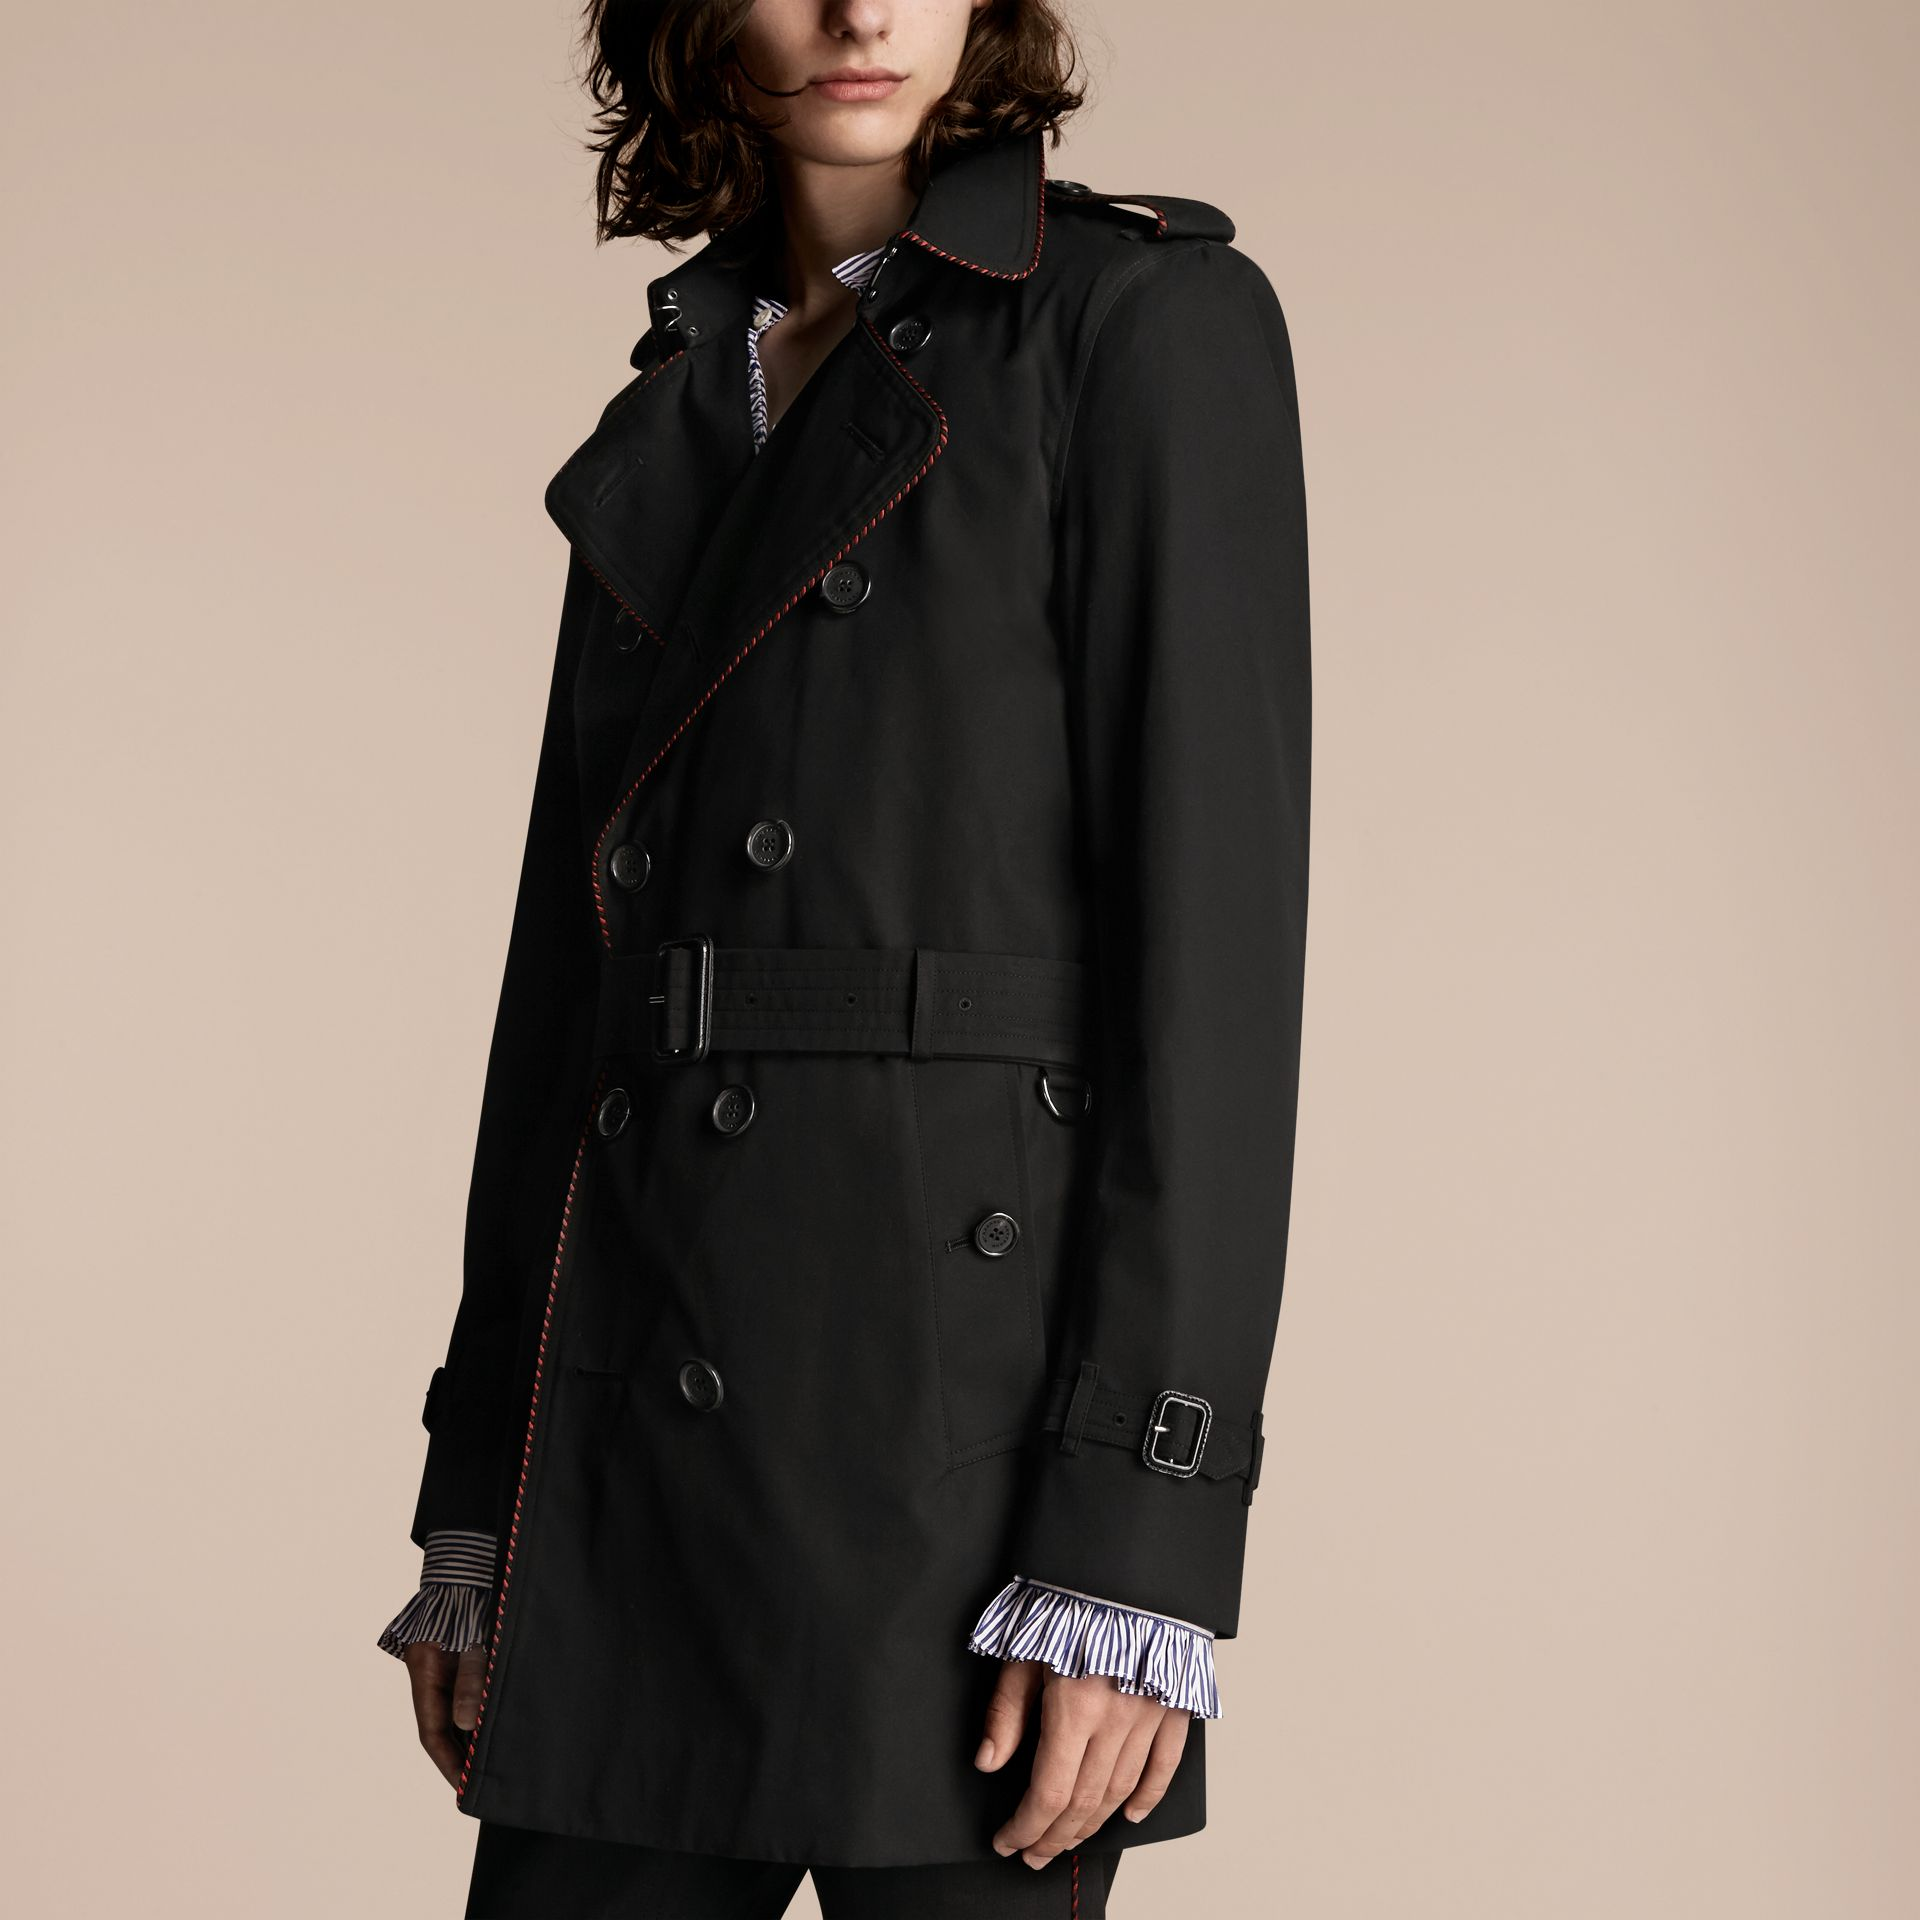 Black Trench Coat with Regimental Piping Black - gallery image 3